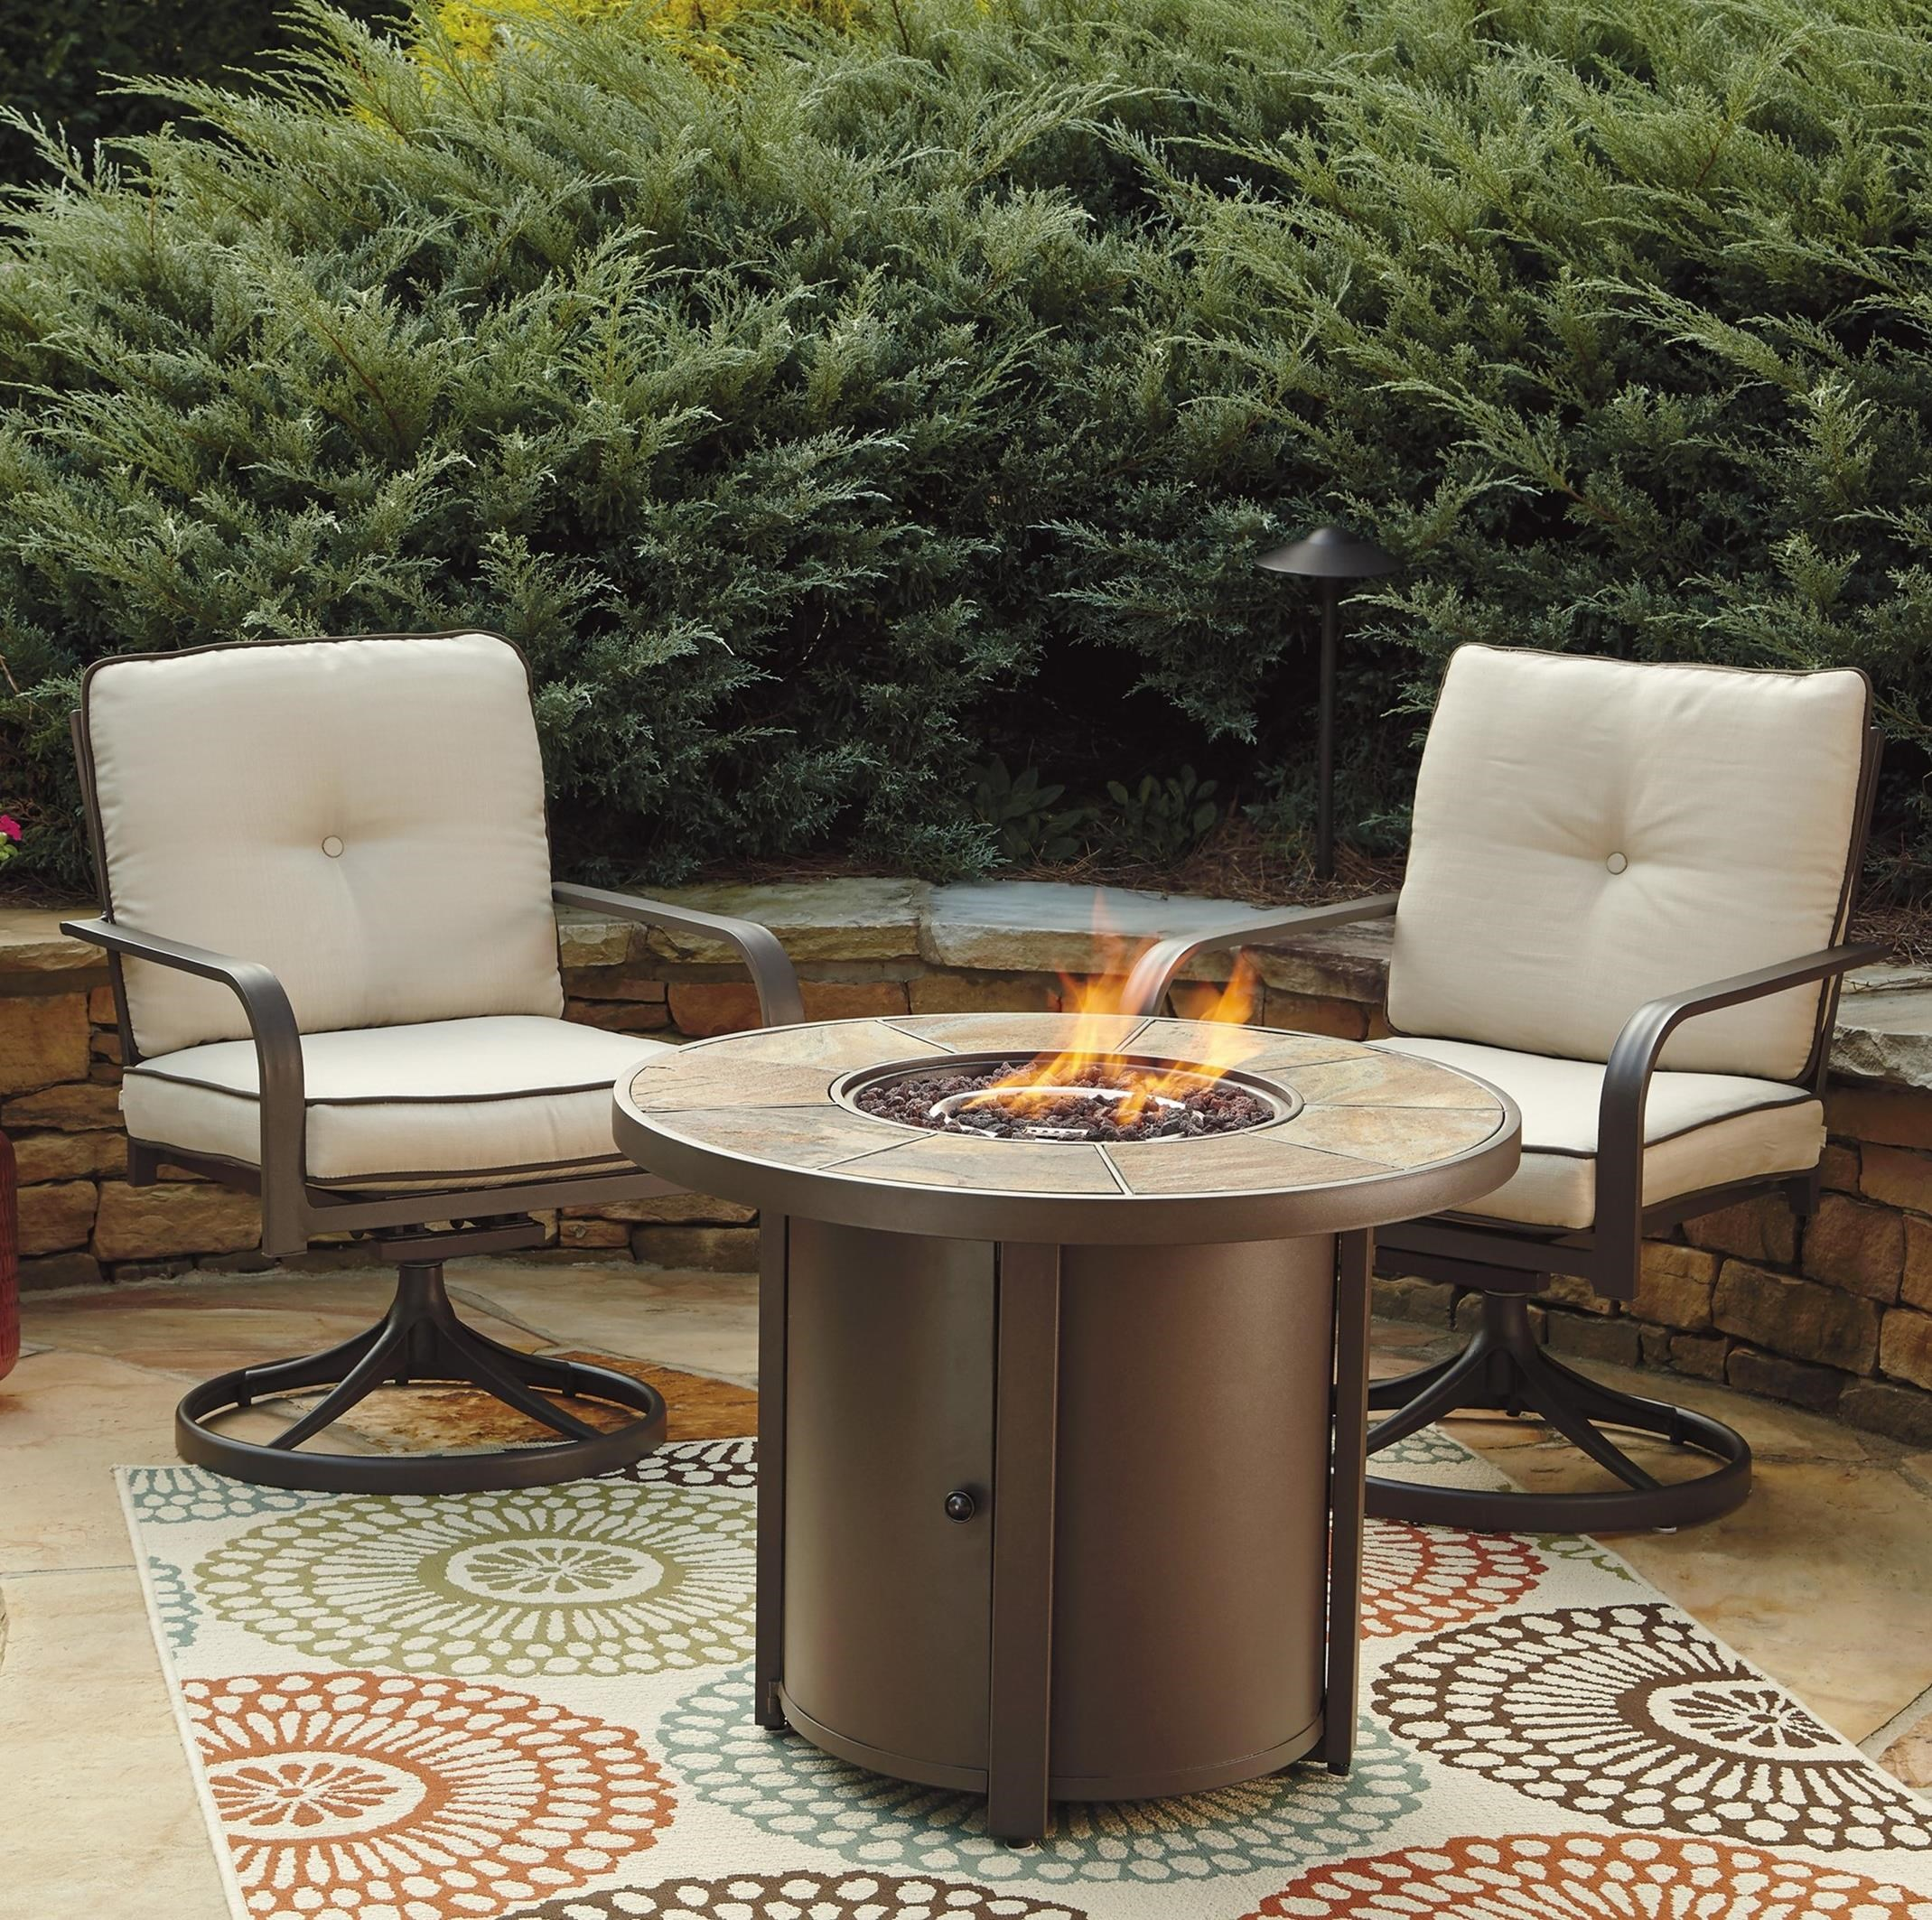 3 Piece Round Fire Pit Table Set W/ Swivel Lounge Chairs